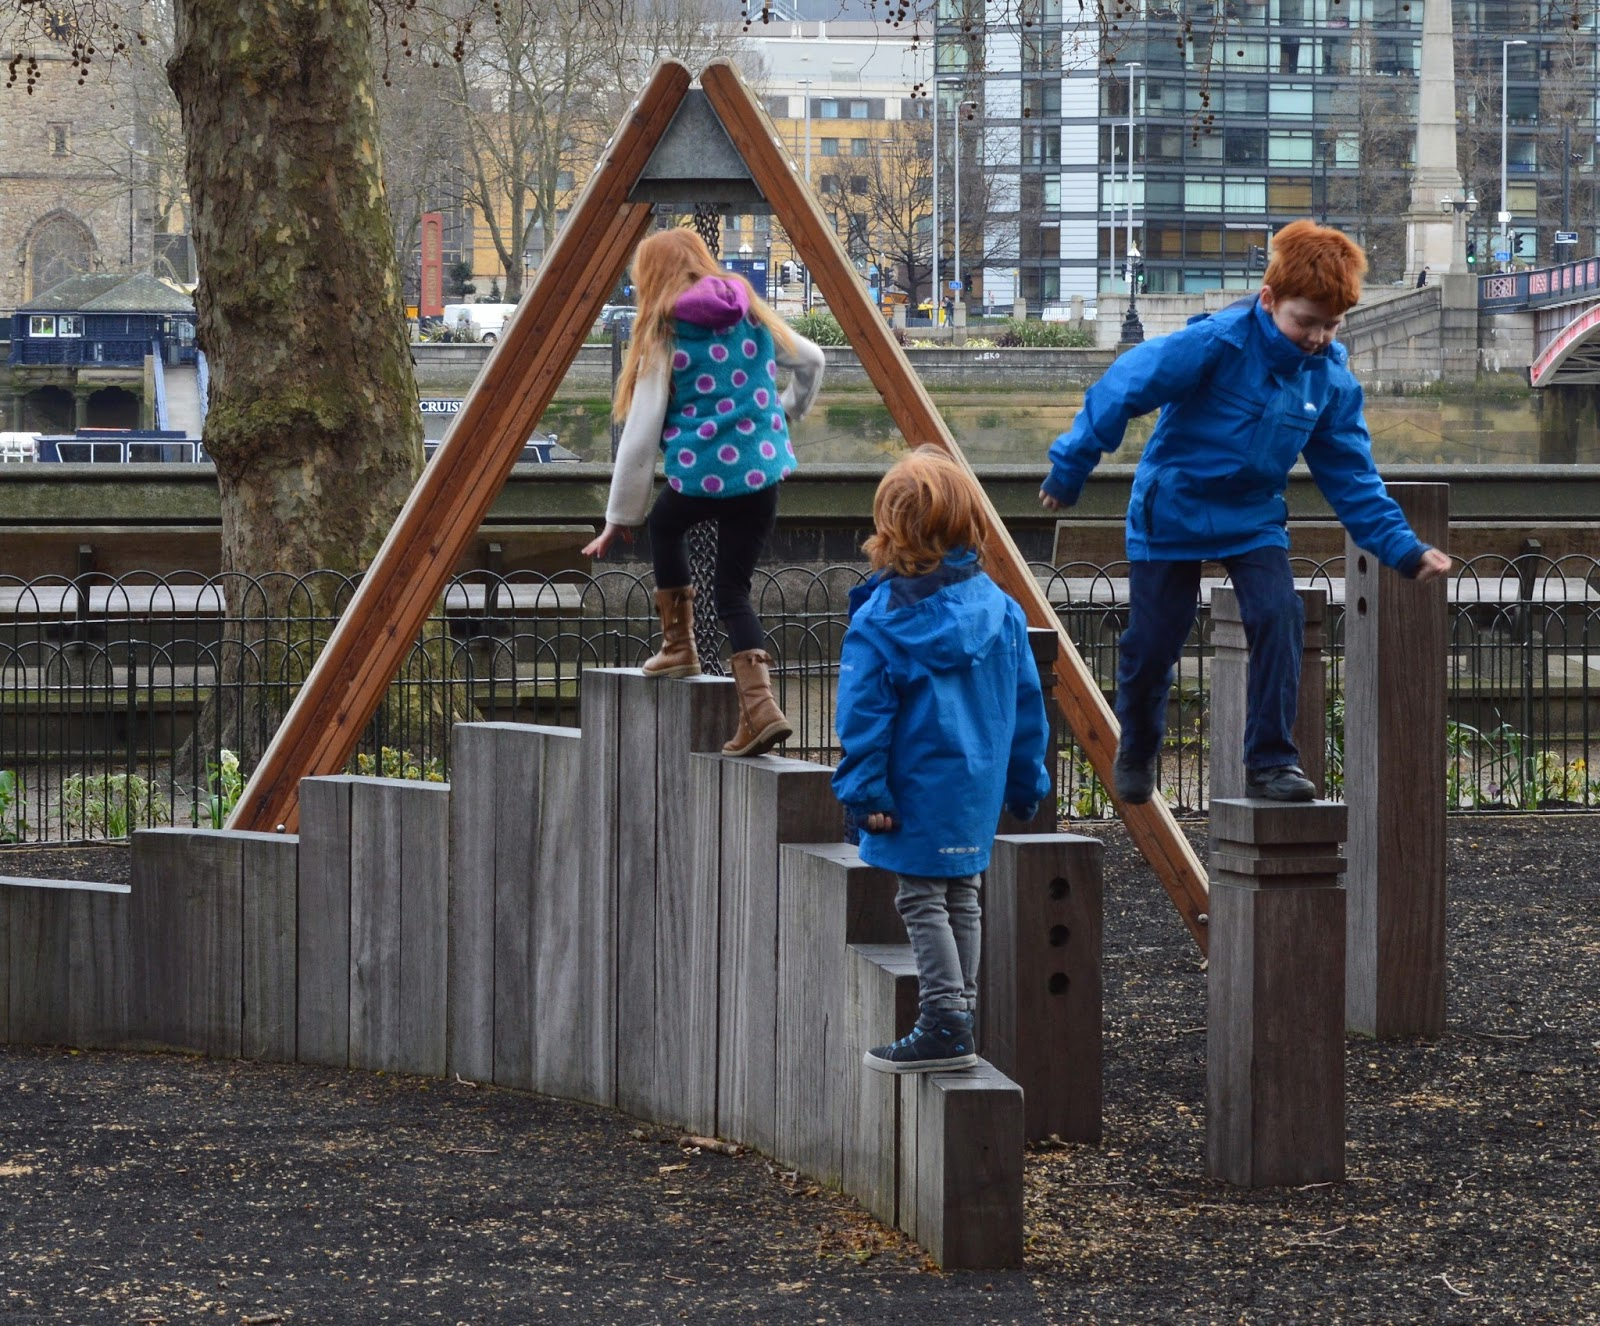 A family day trip to London with Virgin Trains East Coast - Victoria Tower Gardens Playground